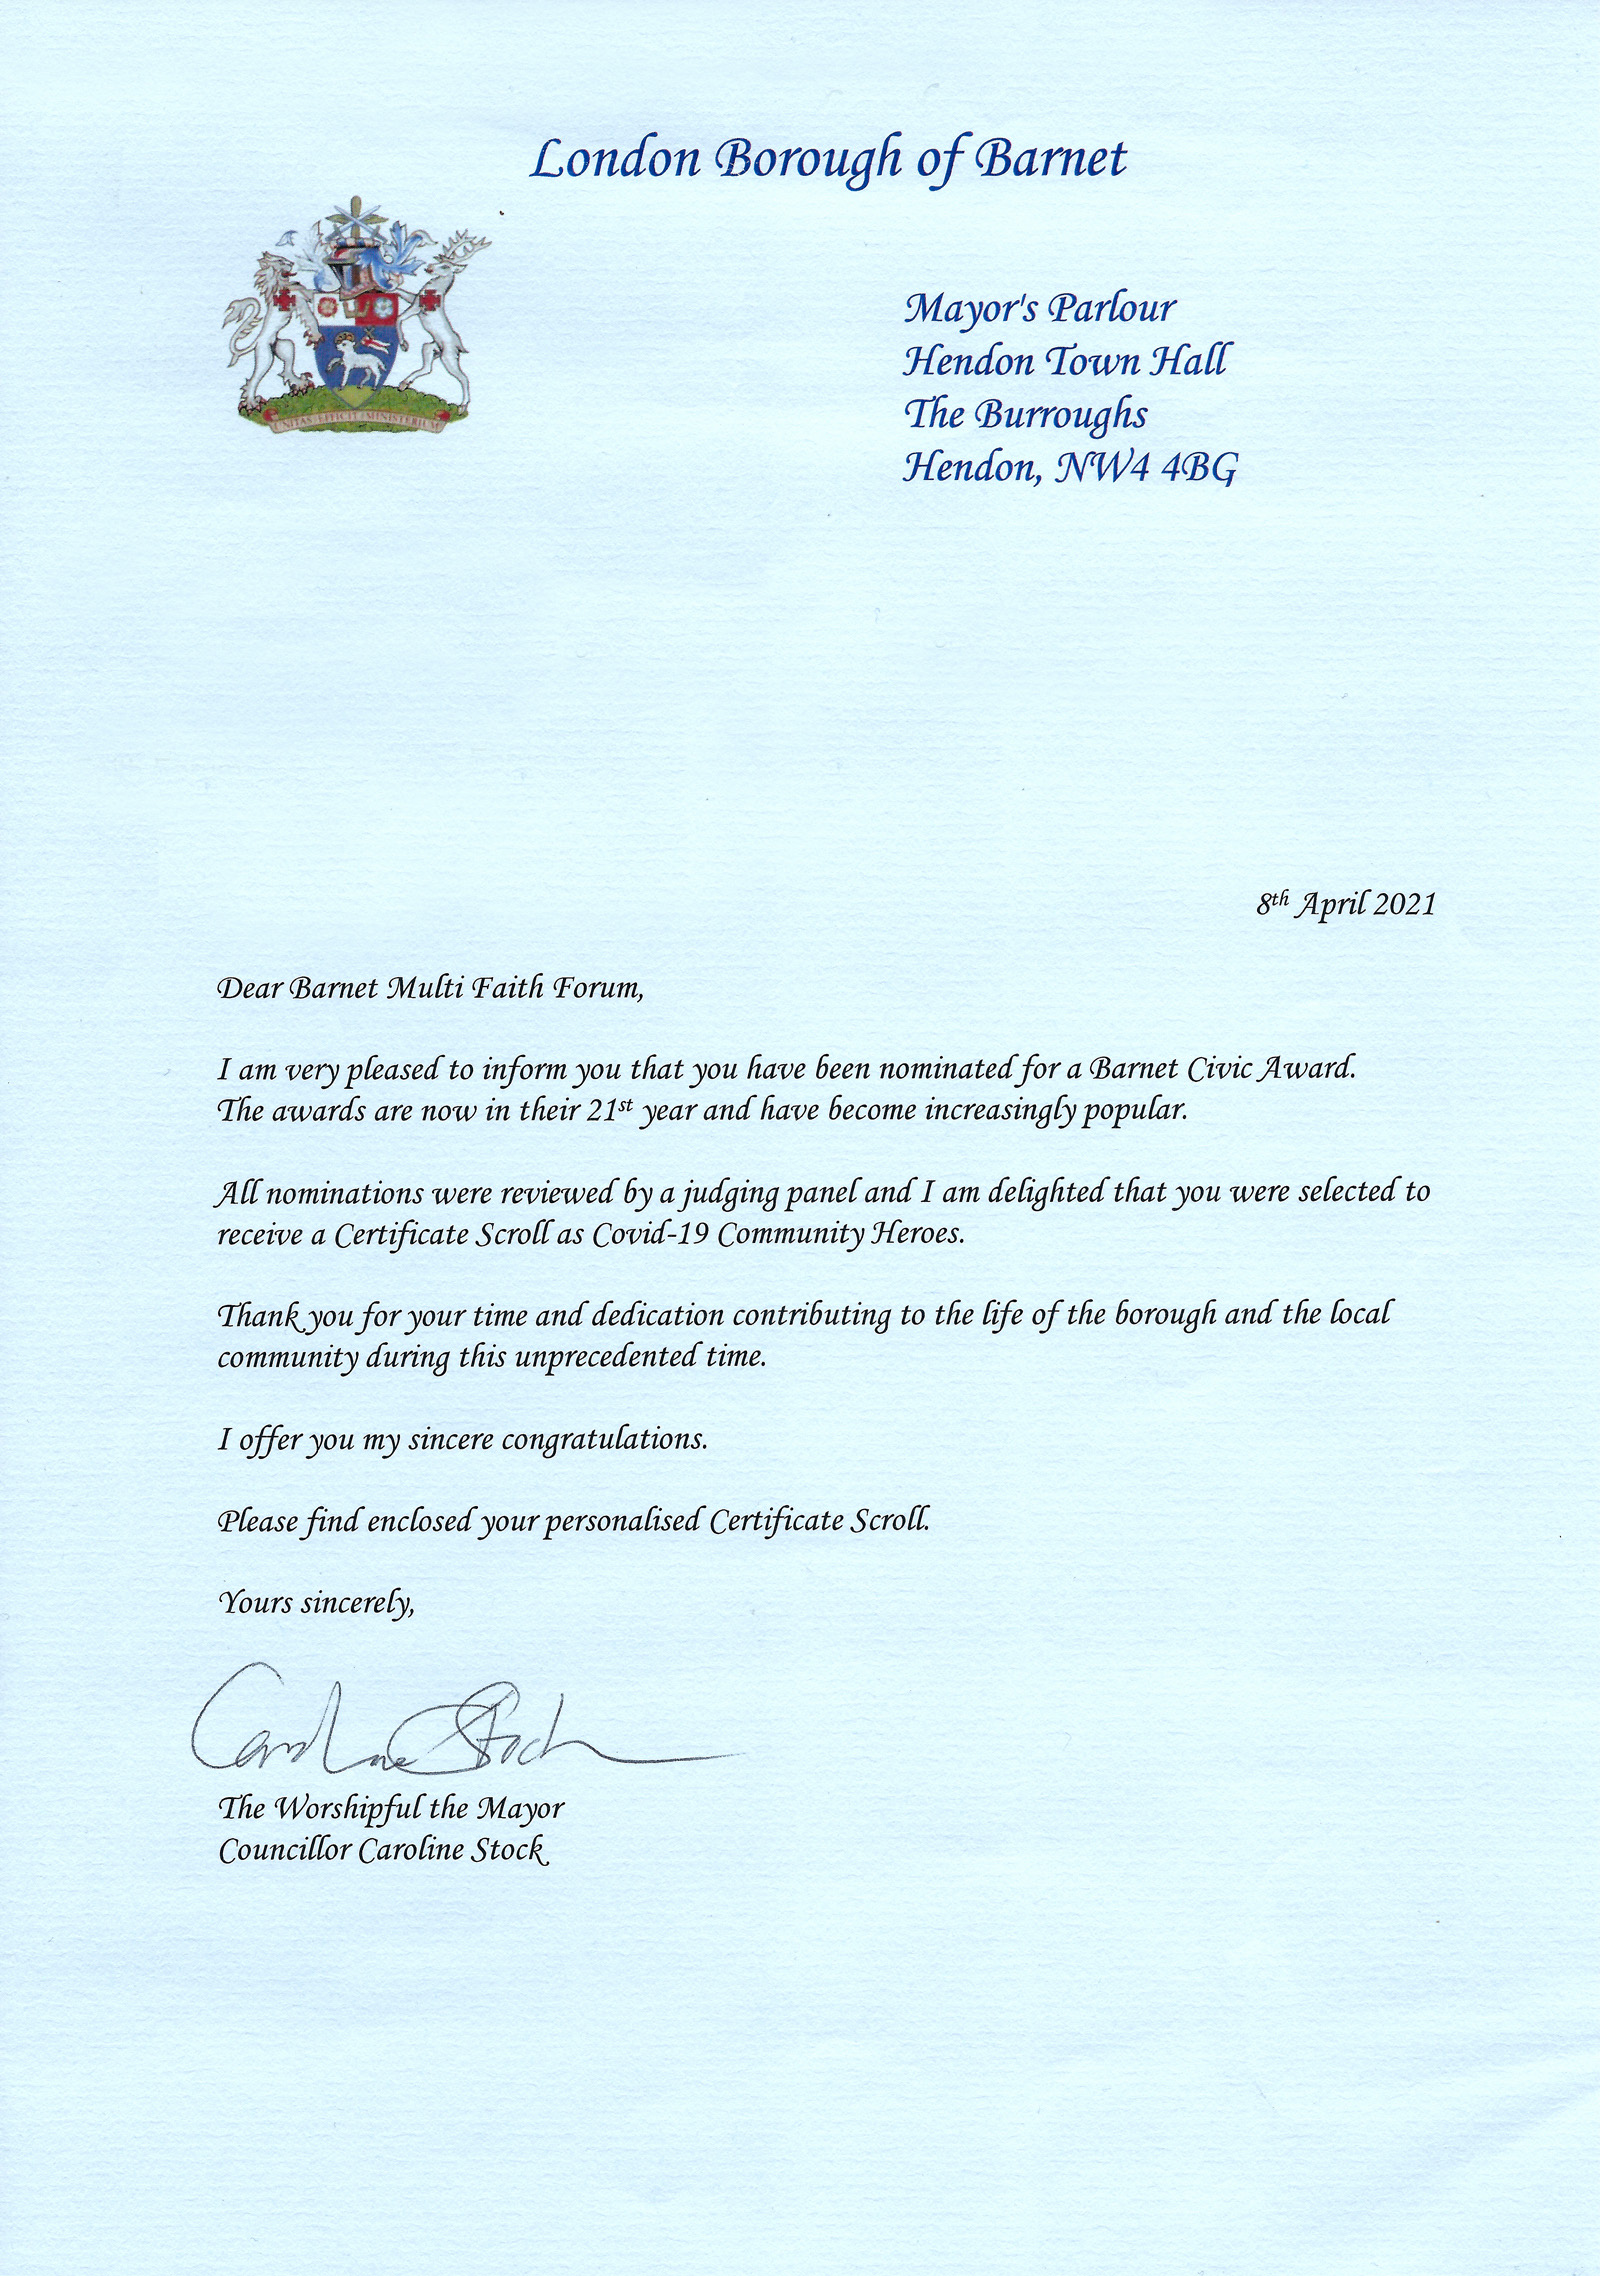 Letter from The Mayor of Barnet in recognition in the Barnet Civic Awards